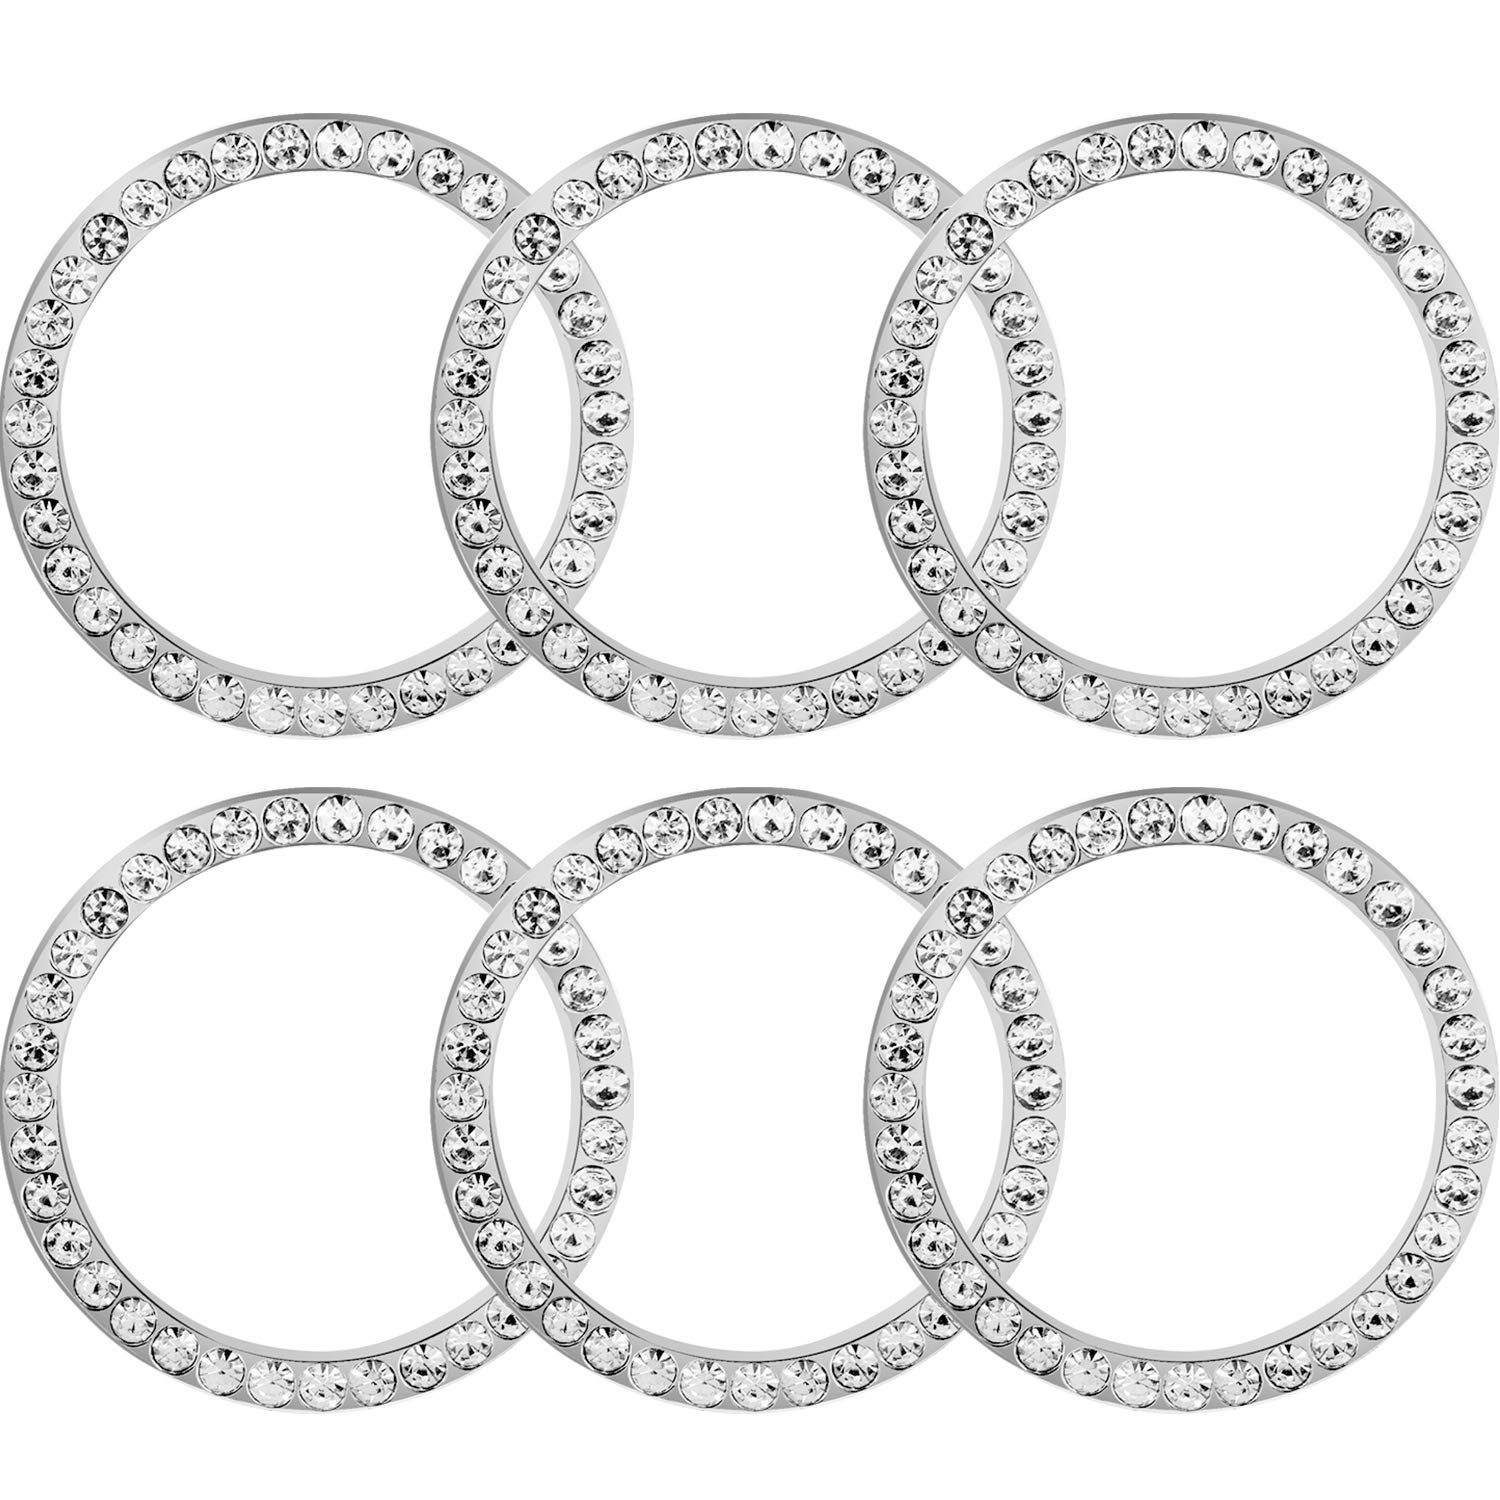 Silver TOODOO 6 Pieces Crystal Rhinestone Car Bling Decorations Ring Emblem Sticker Decor Car Engine Start Stop Accessories for Men and Women